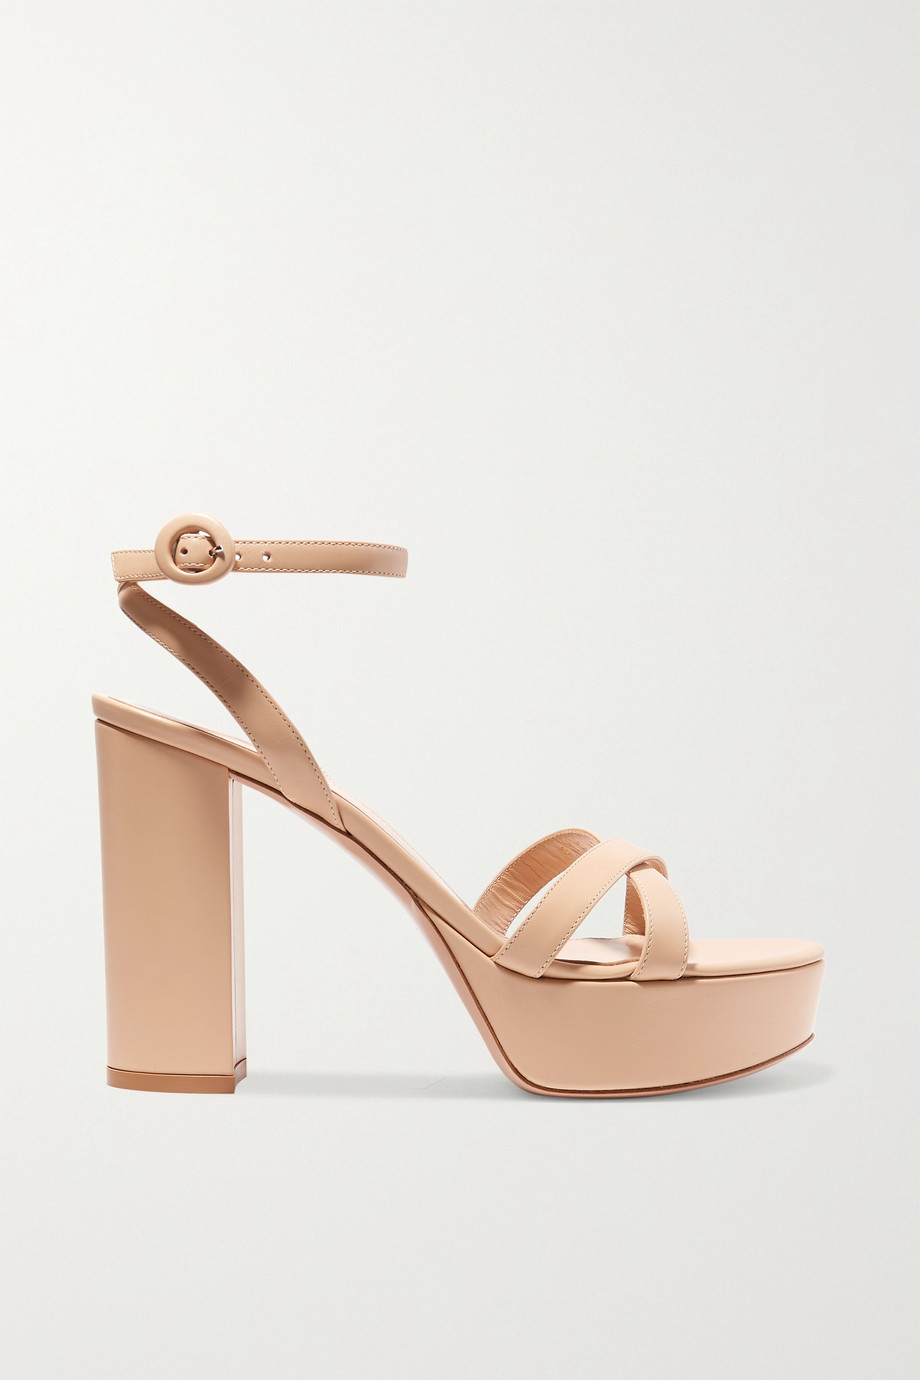 Gianvito Rossi Poppy 70 leather platform sandals